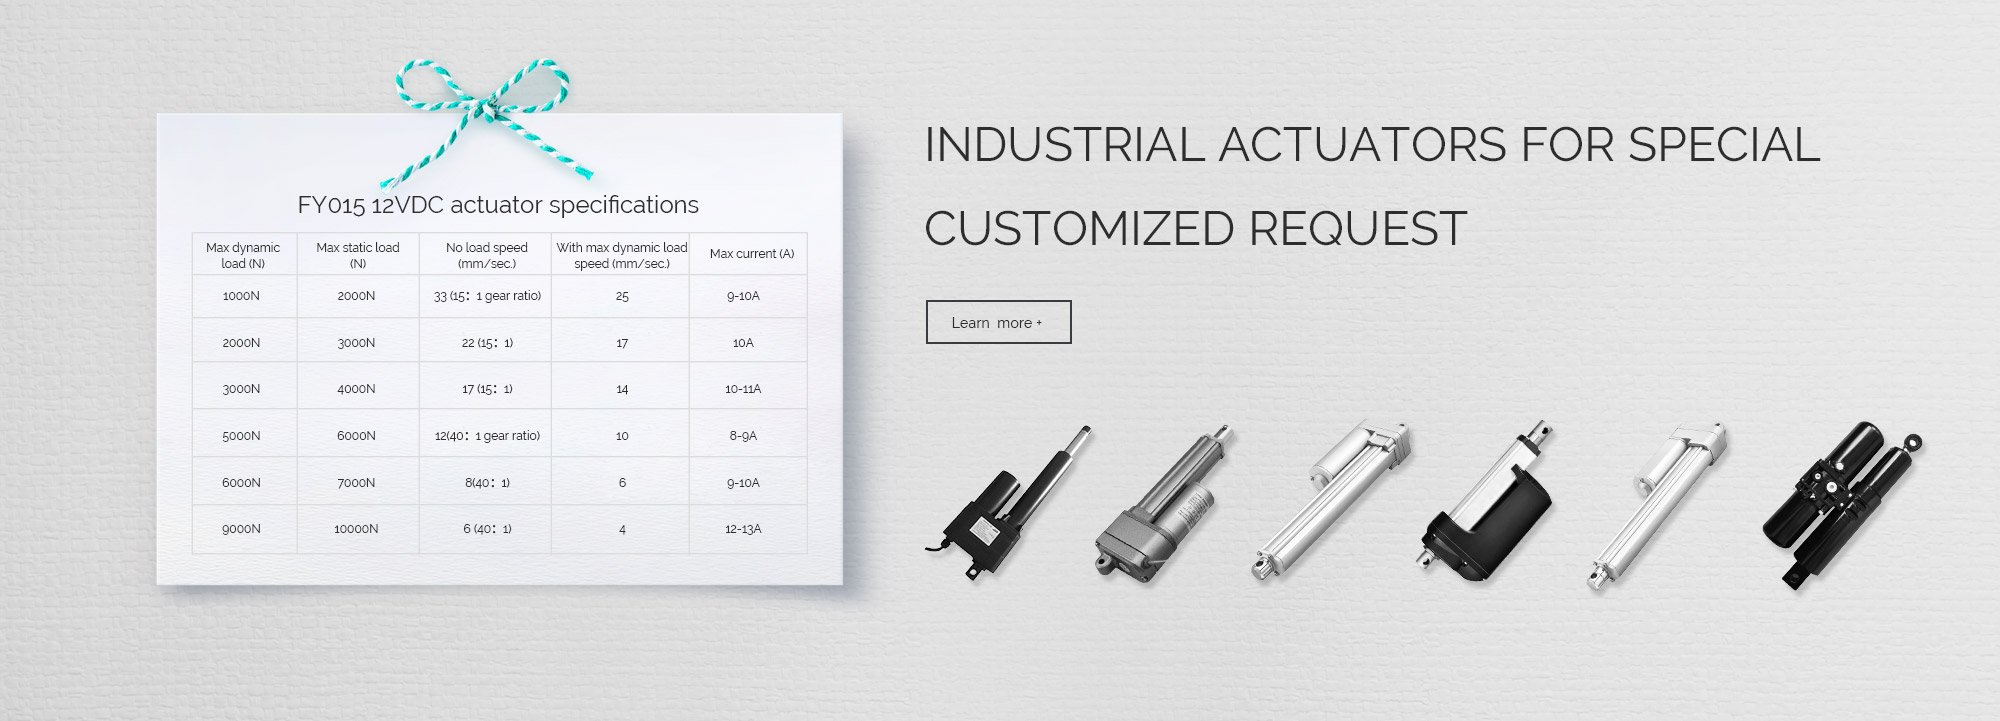 industrial actuators for special customized request